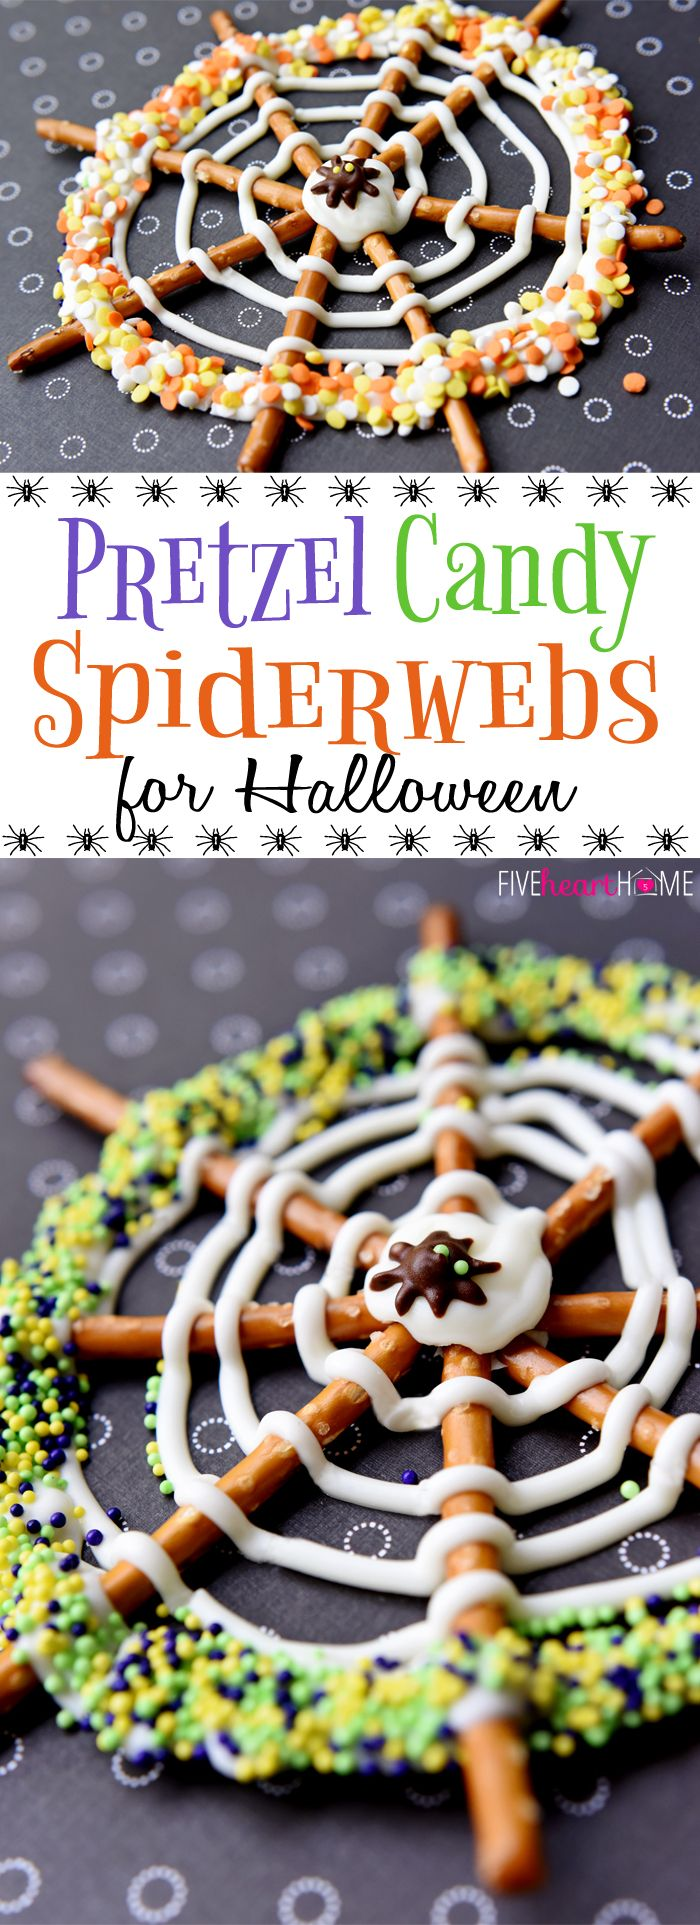 337 best Fun and Creepy Halloween Recipes images on Pinterest